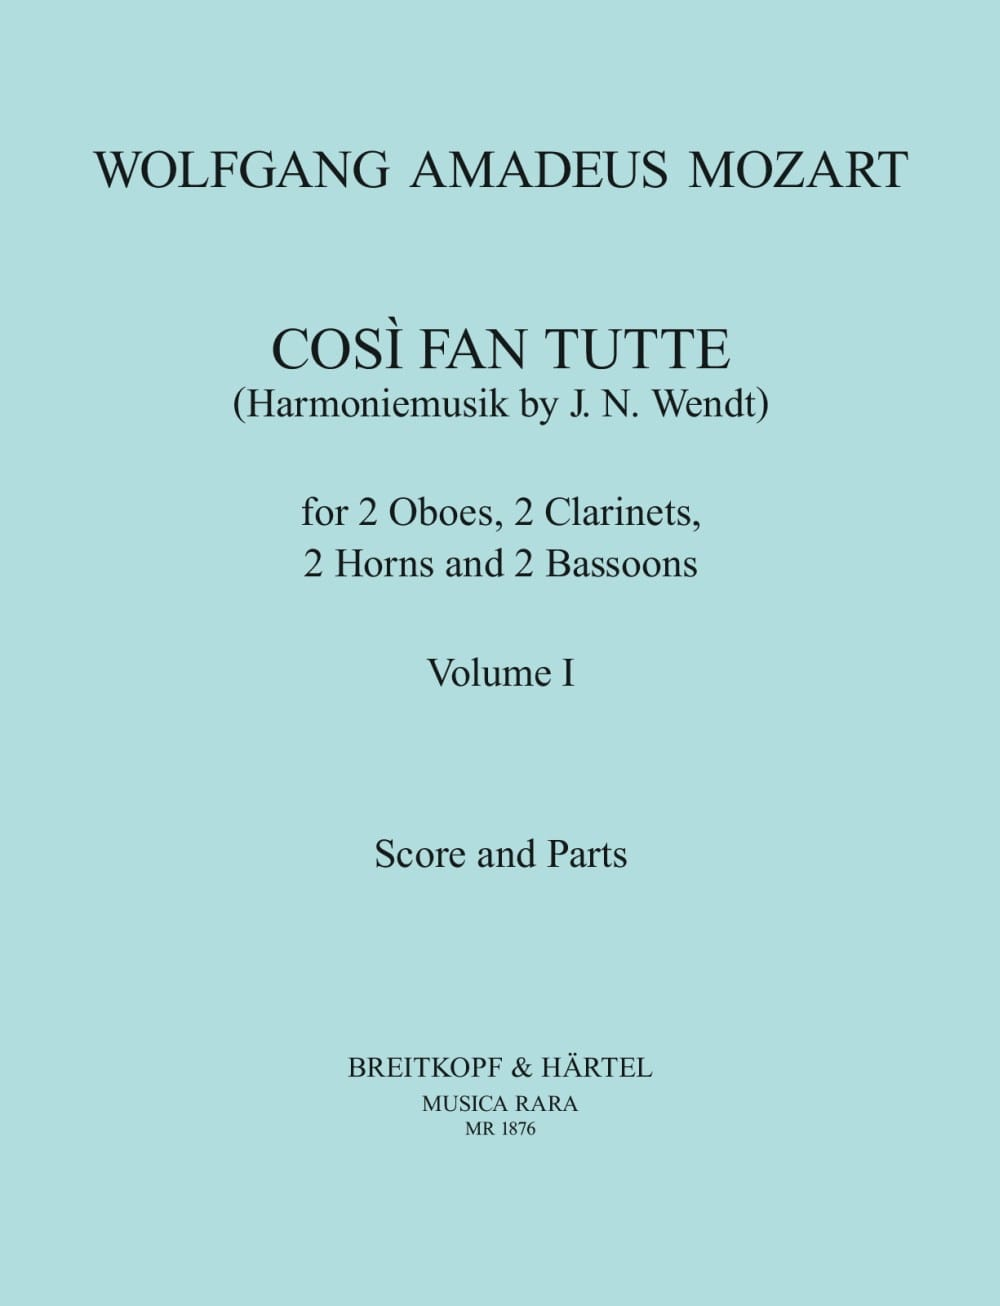 MOZART - Cosi Fan Tutte Volume 1 - harmoniemusik - Score Parts - Partition - di-arezzo.co.uk